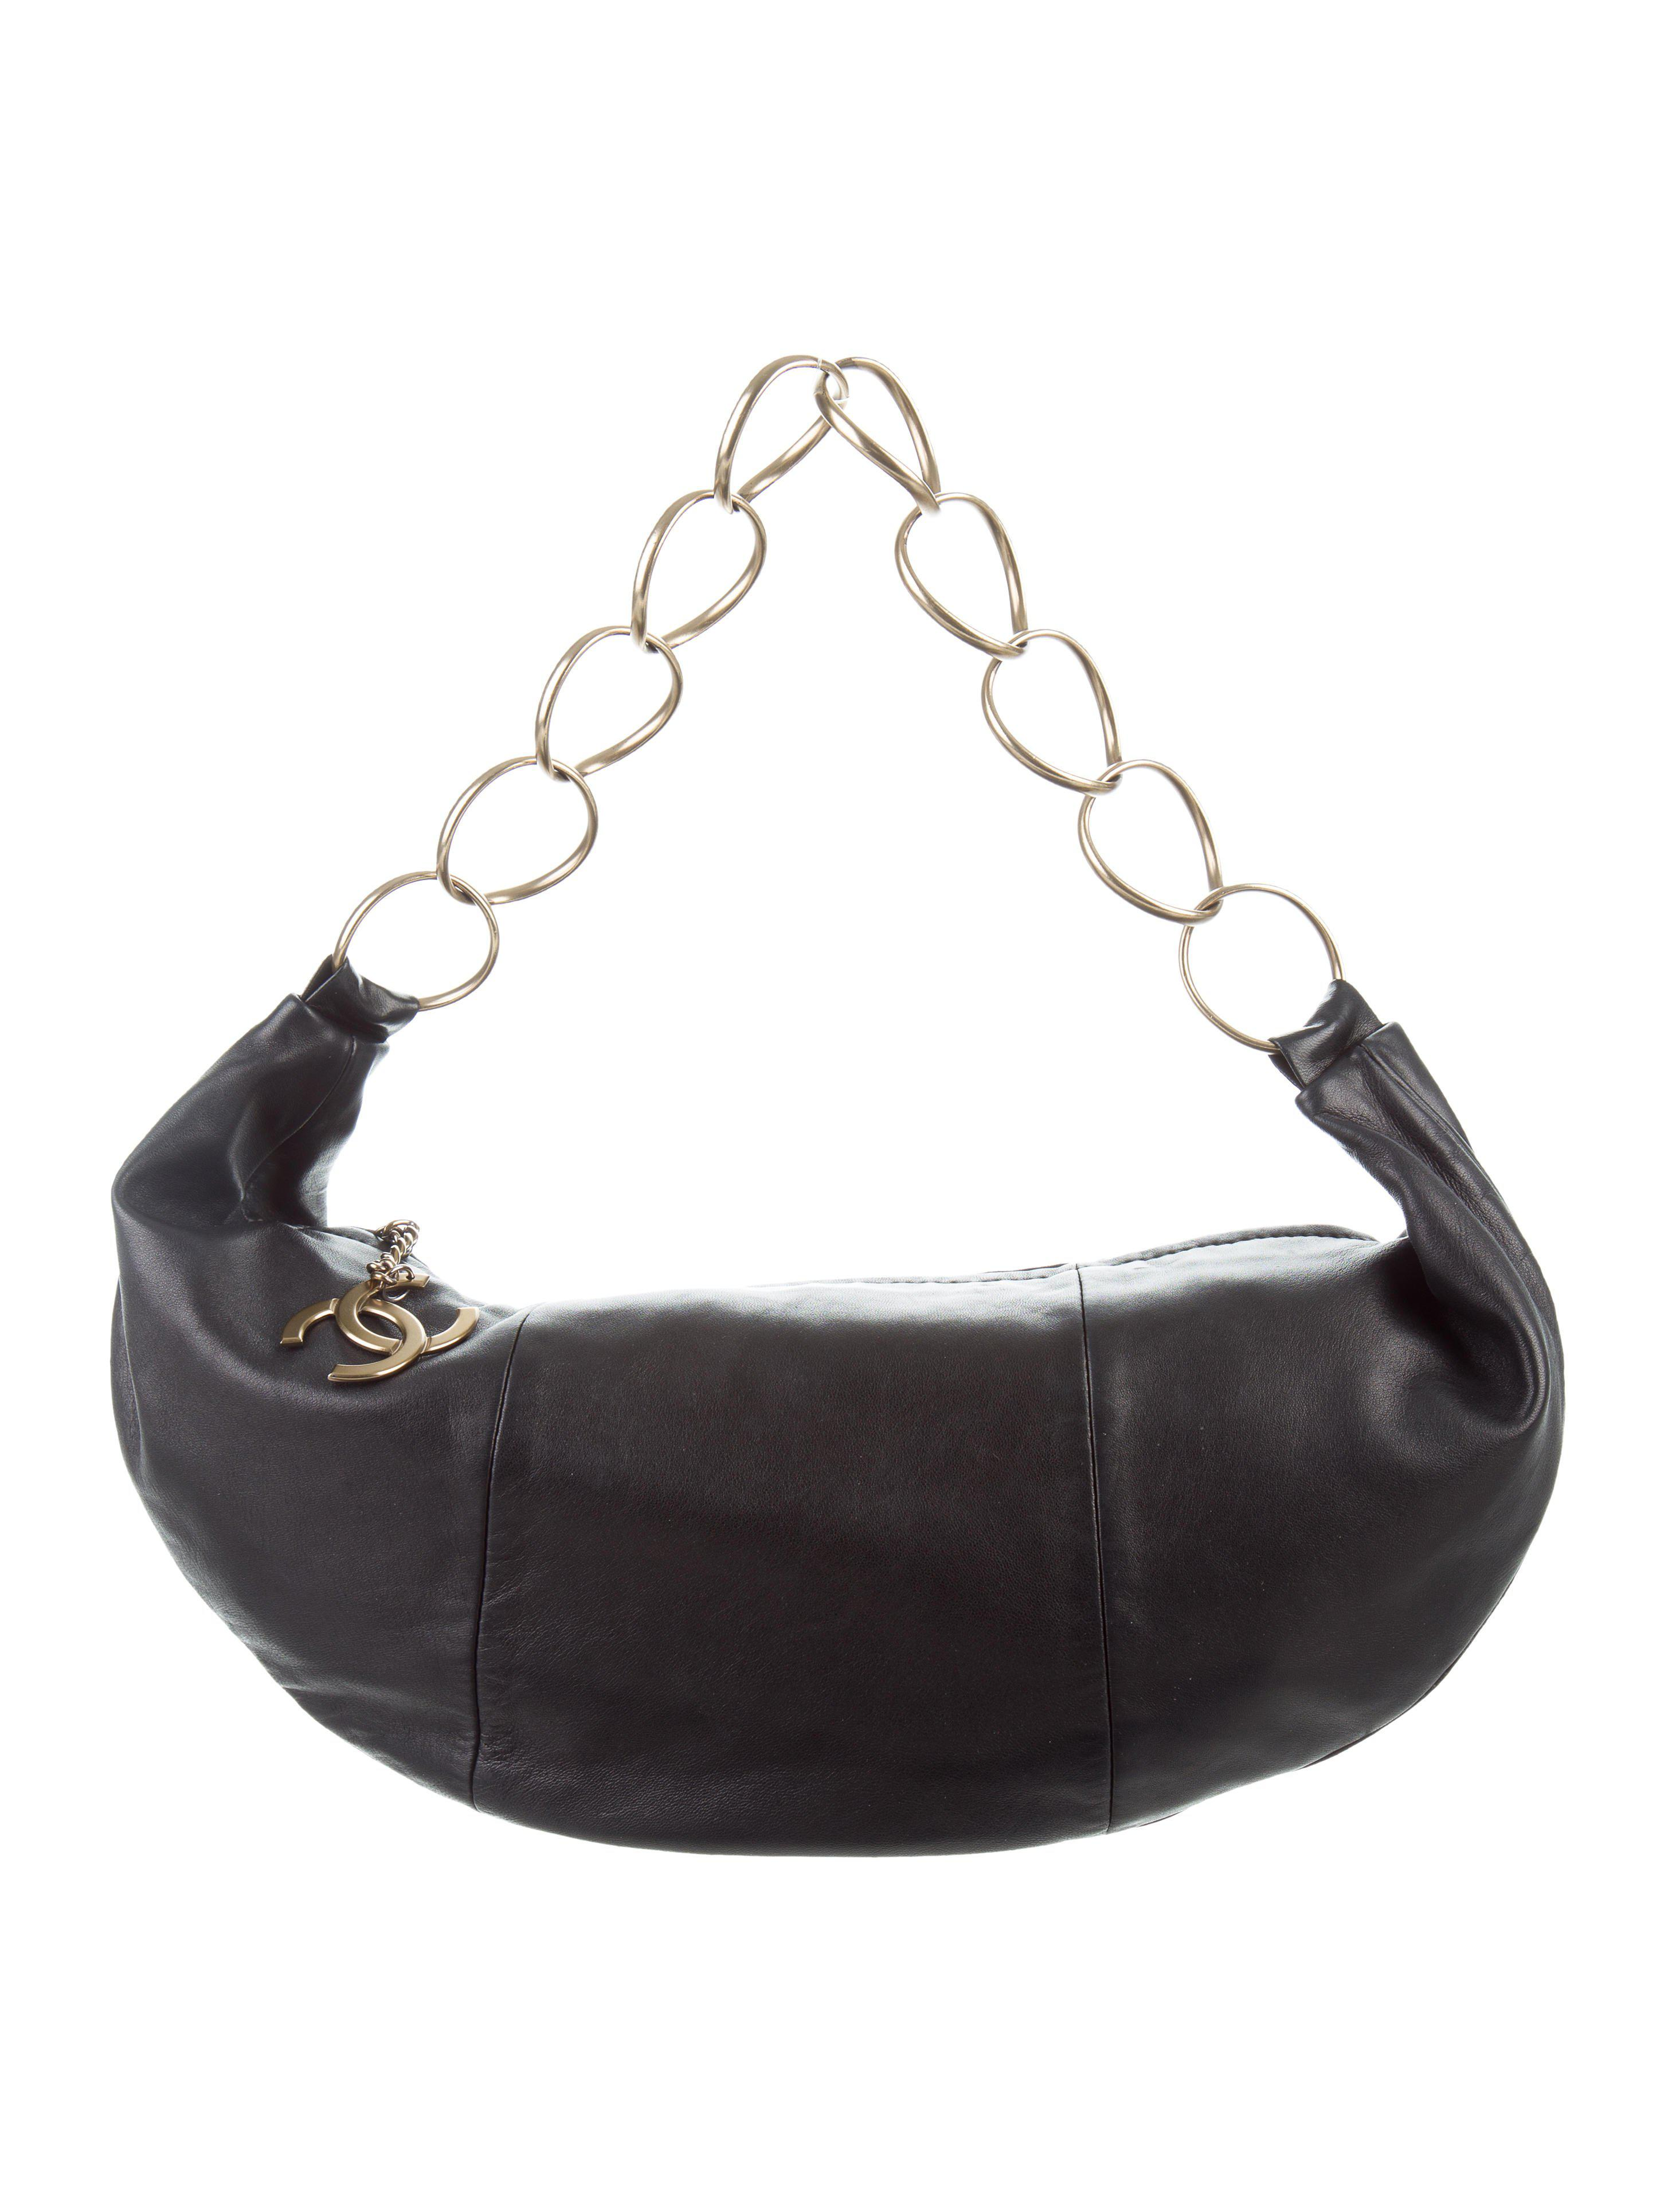 e05ded8cce8a Lyst - Chanel Vintage Nappa Chain Hobo Black in Metallic